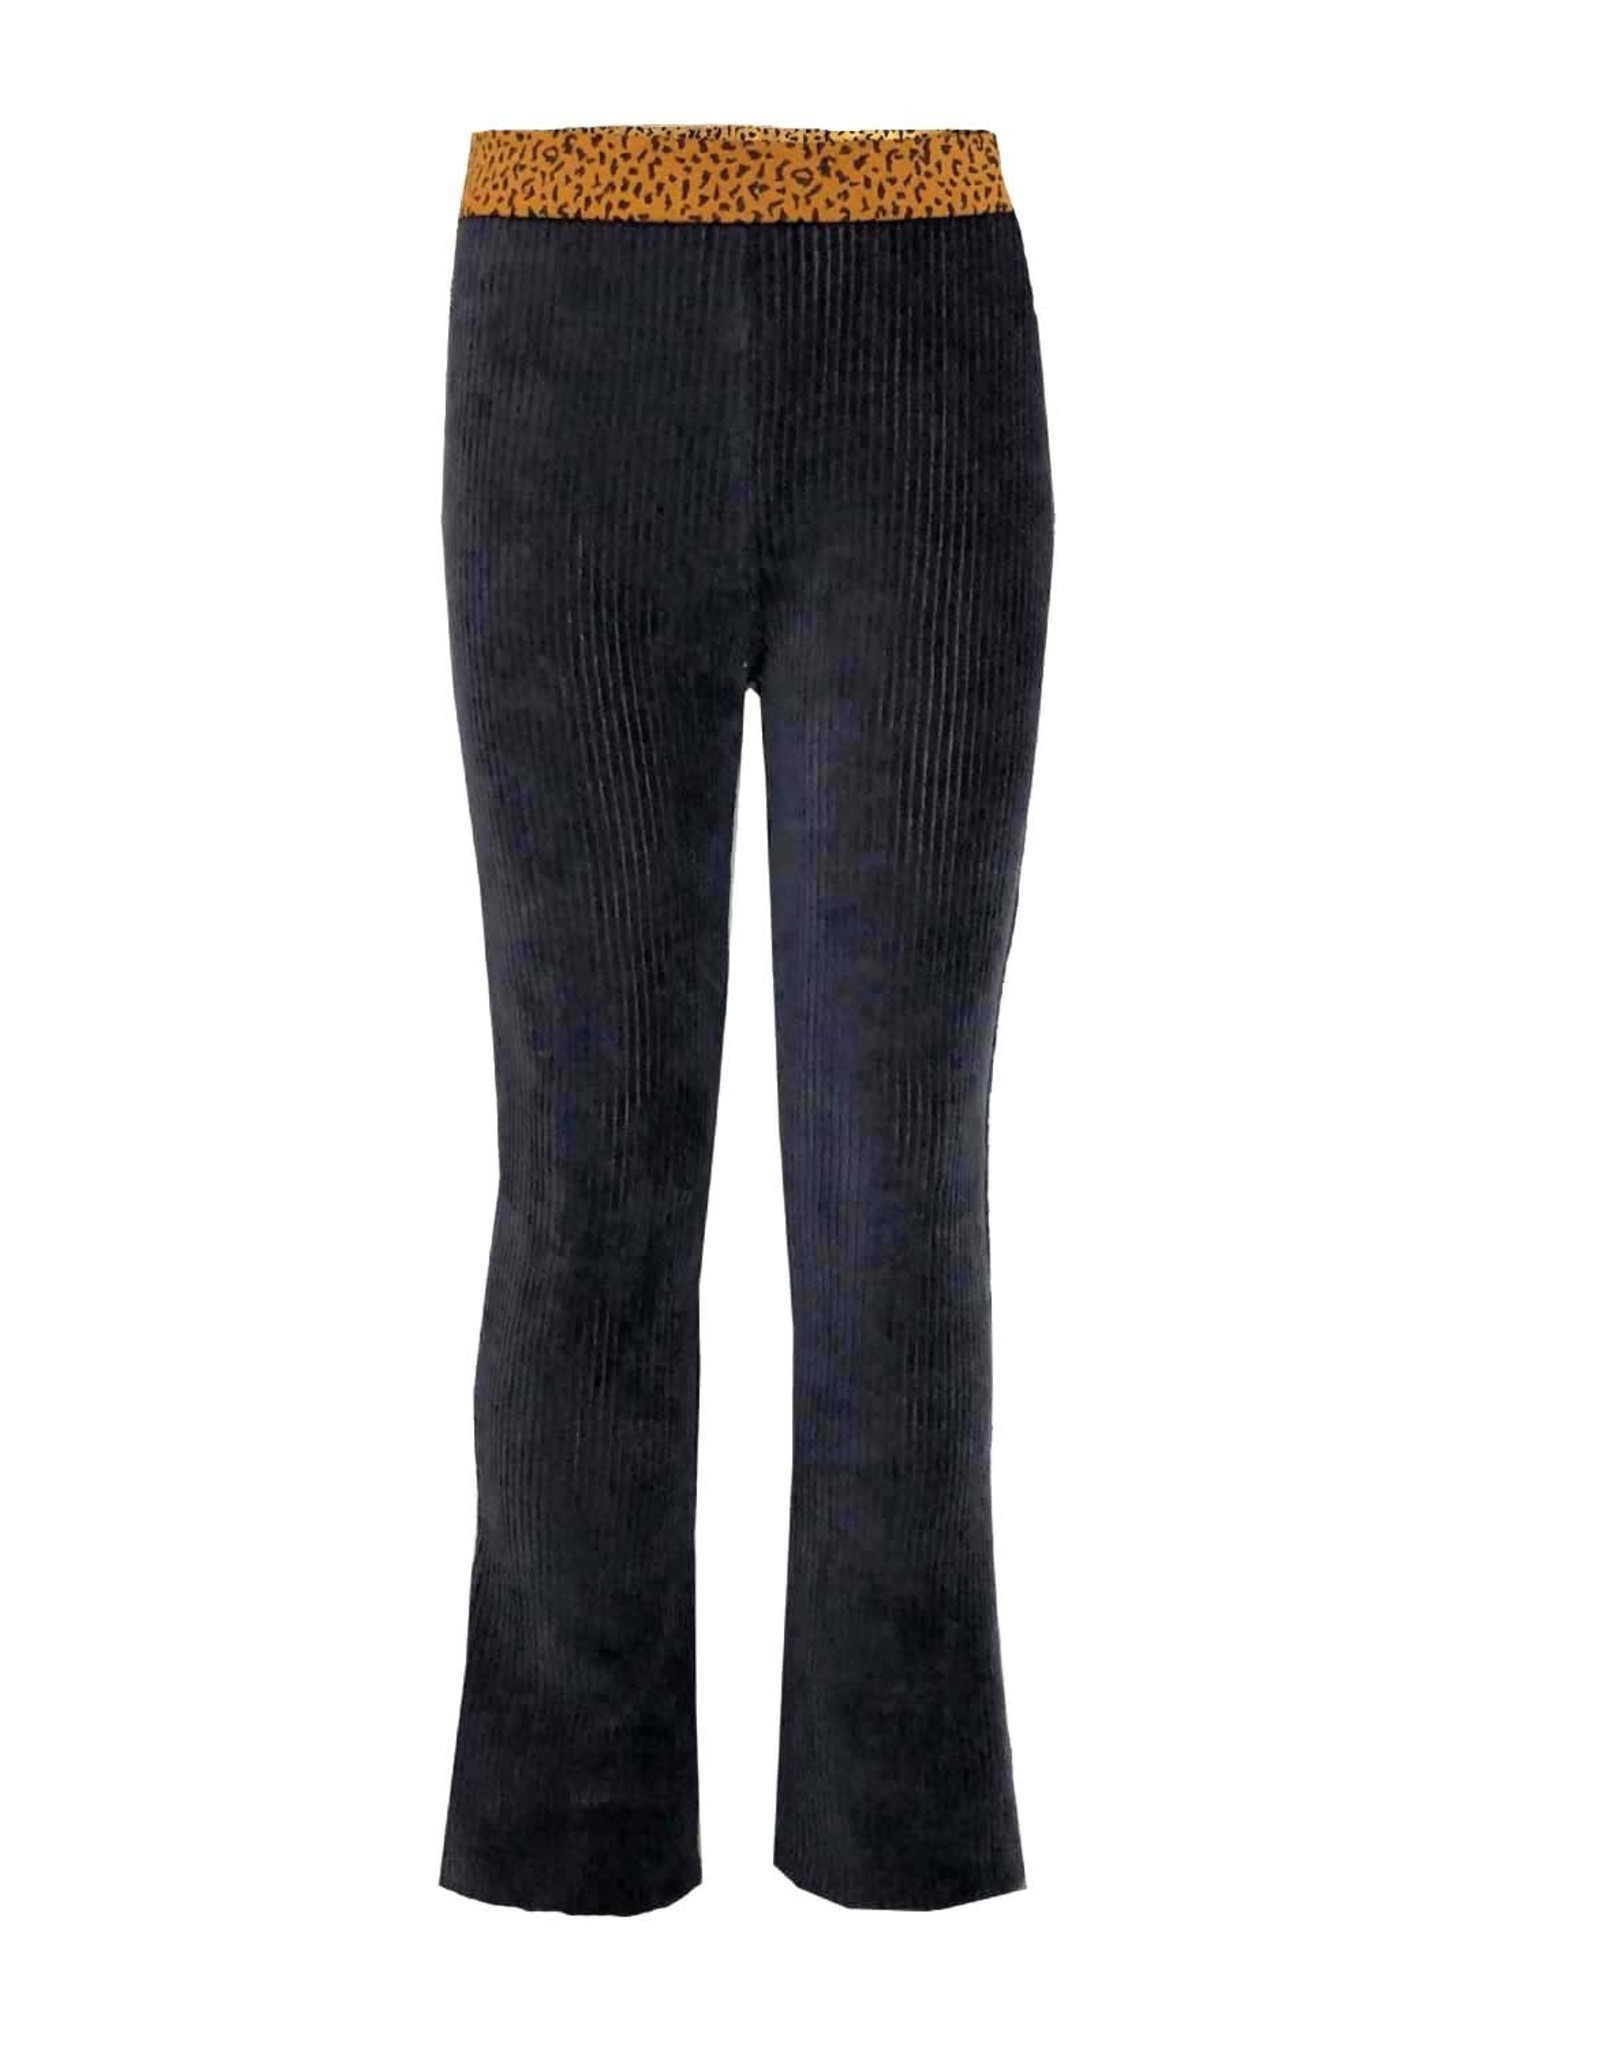 Topitm Annebelle Flare pant RIB nearly black